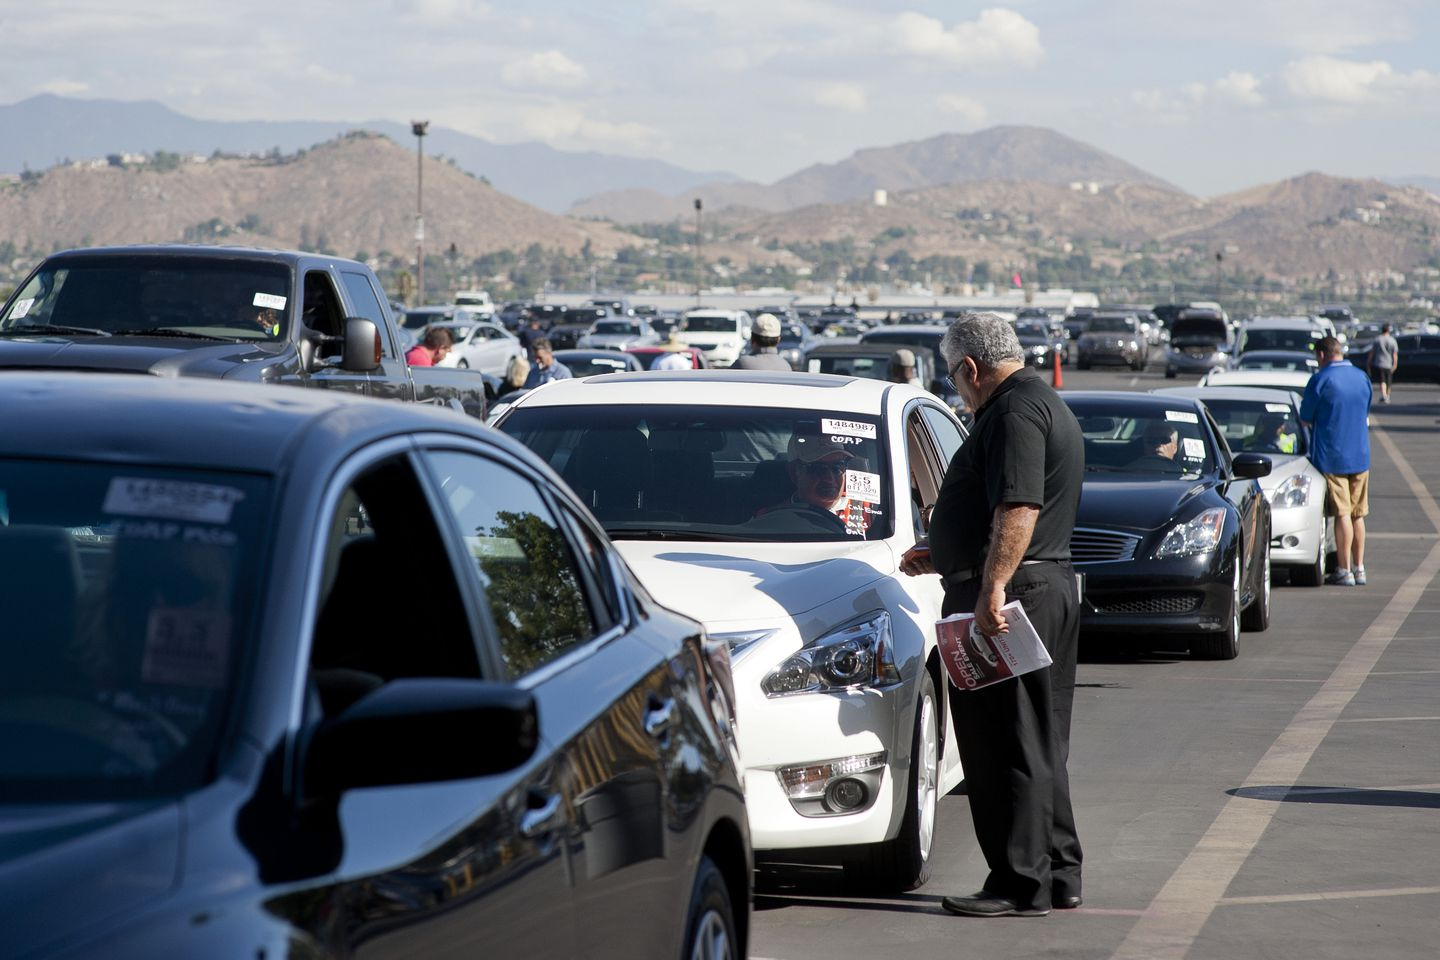 Manheim Public Auto Auction >> Incidents At Auto Auctions Prompting More Safety Measures